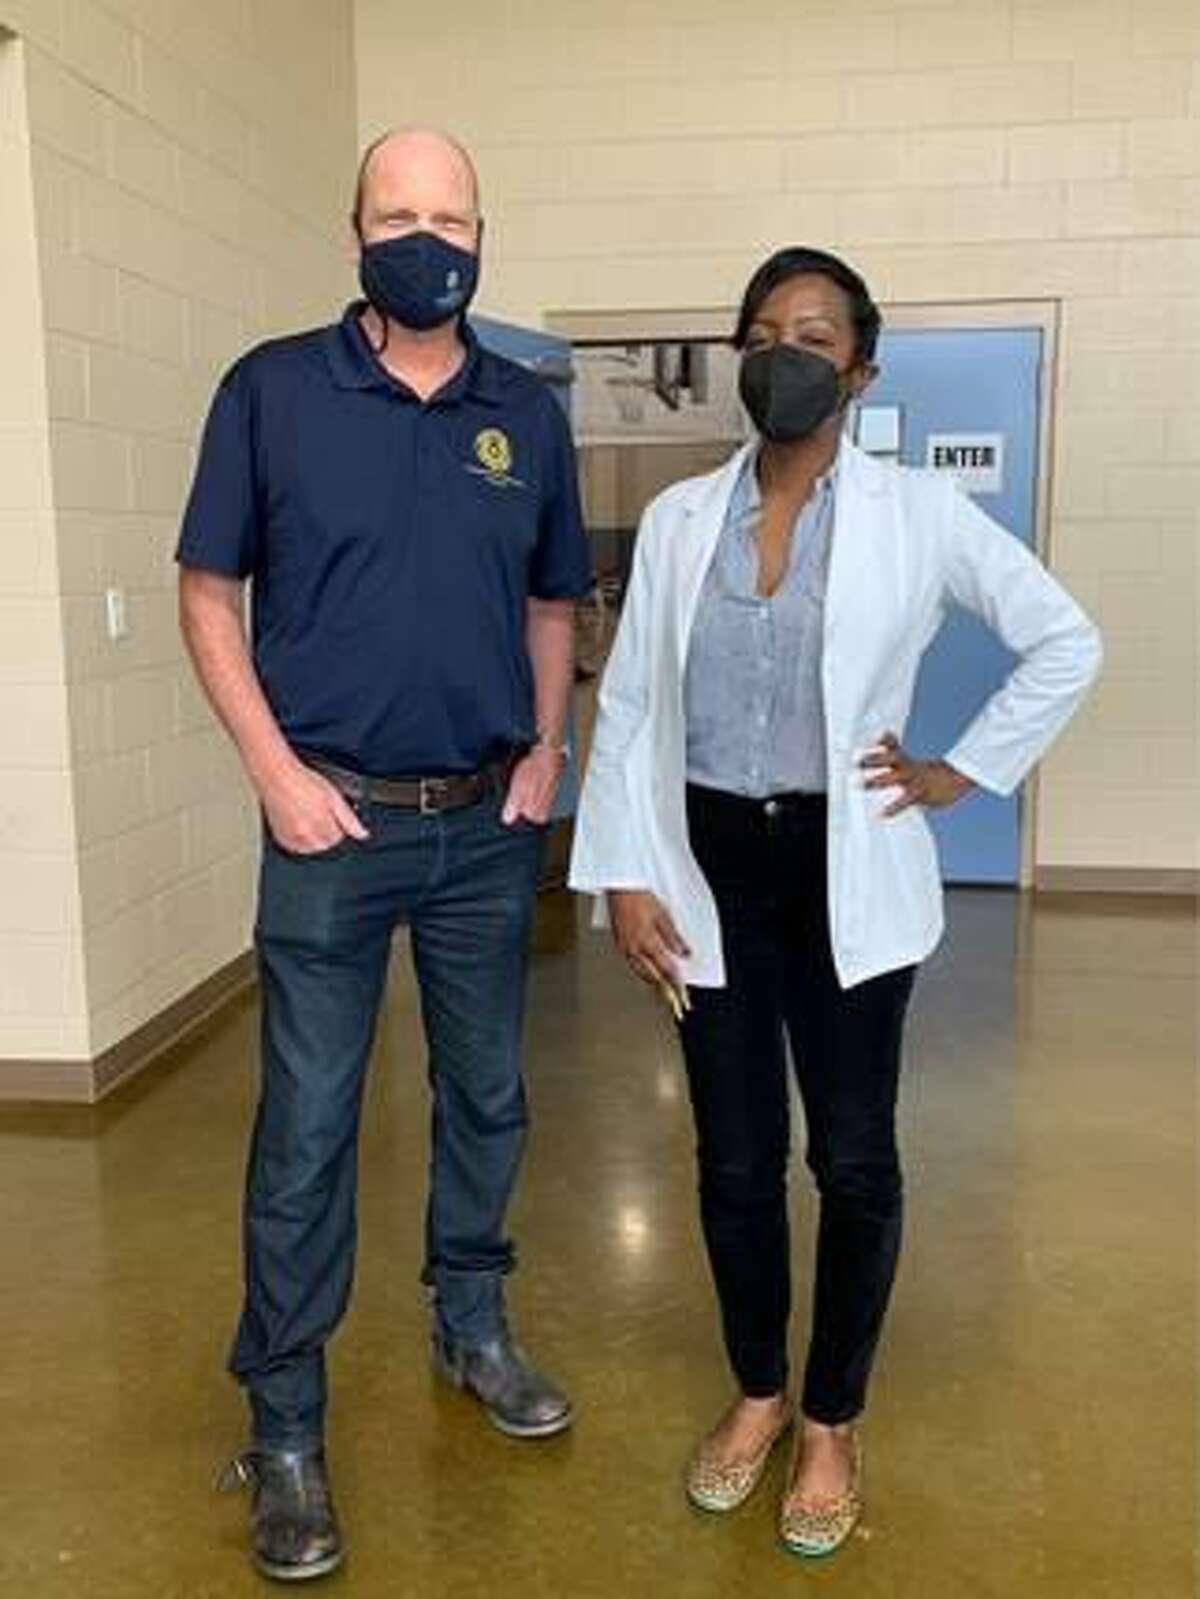 Fort Bend Commissioner Ken R. DeMerchant and Dr. Venus Ruben were on hand to help administer vaccinations in the Four Corners Neighborhood.